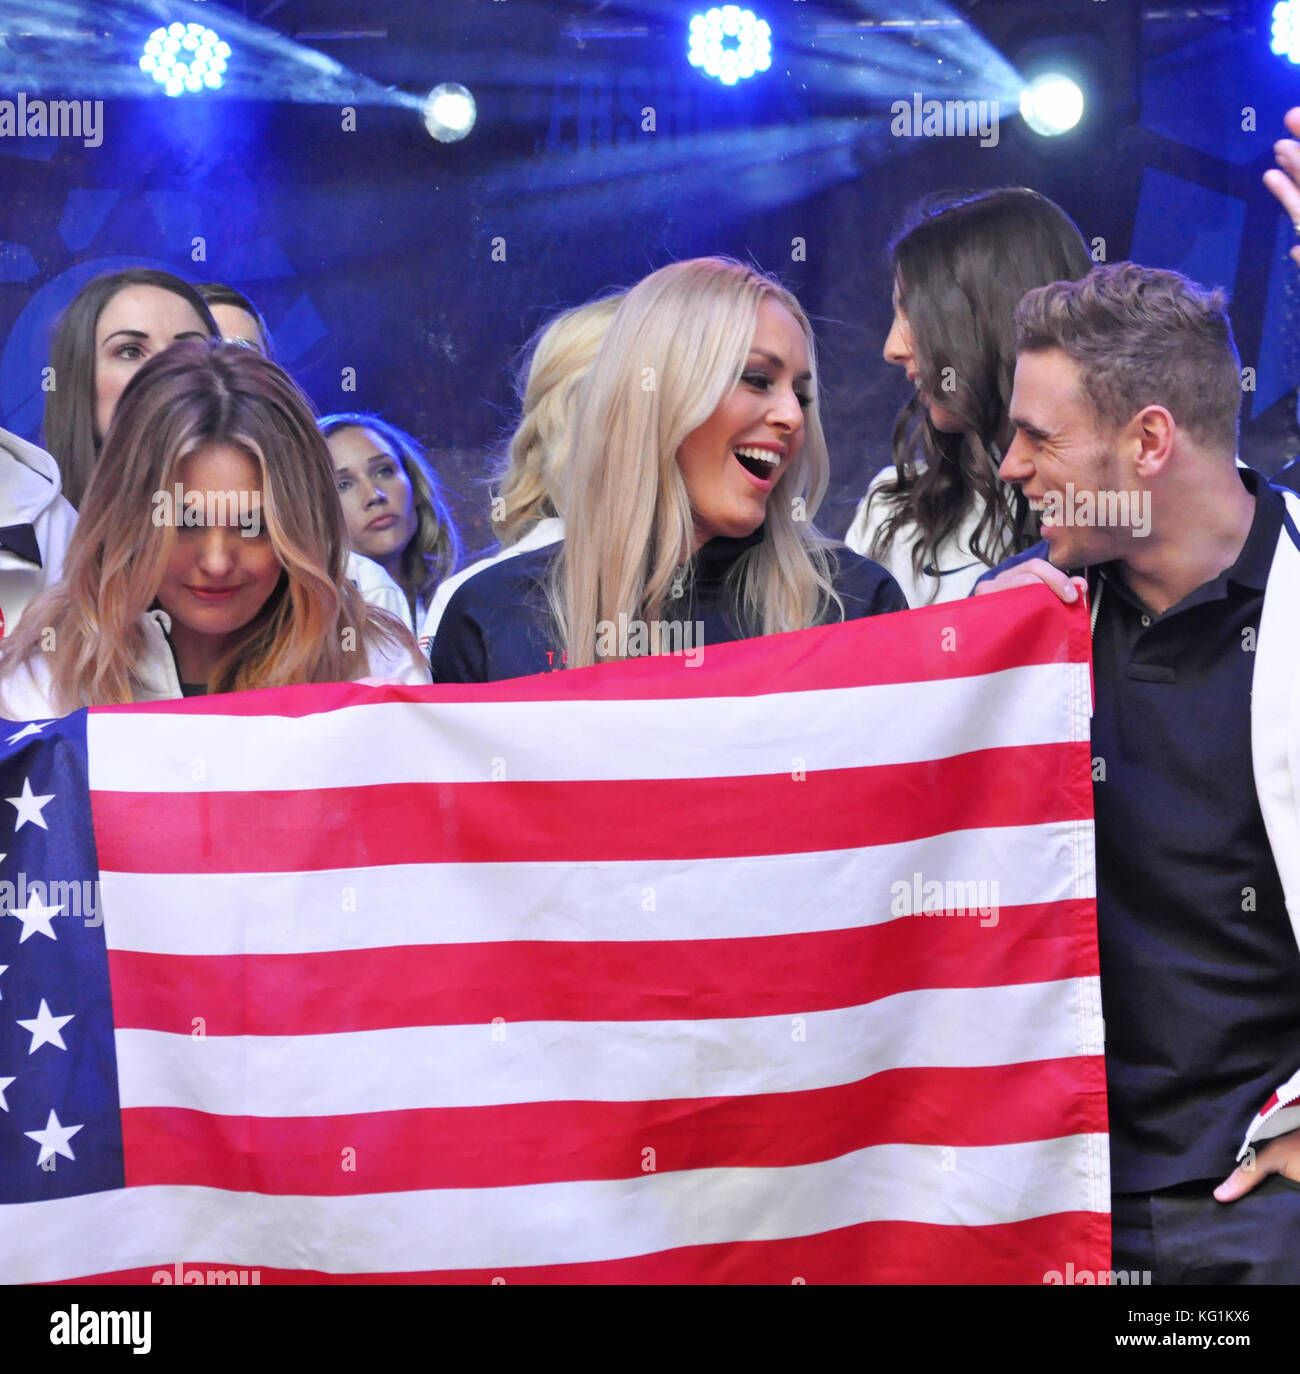 Times Square, New York, NY. Team USA teammates Amy Purdy, Linsey Vonn, and Gus Kenworthy had a great time holding - Stock Image